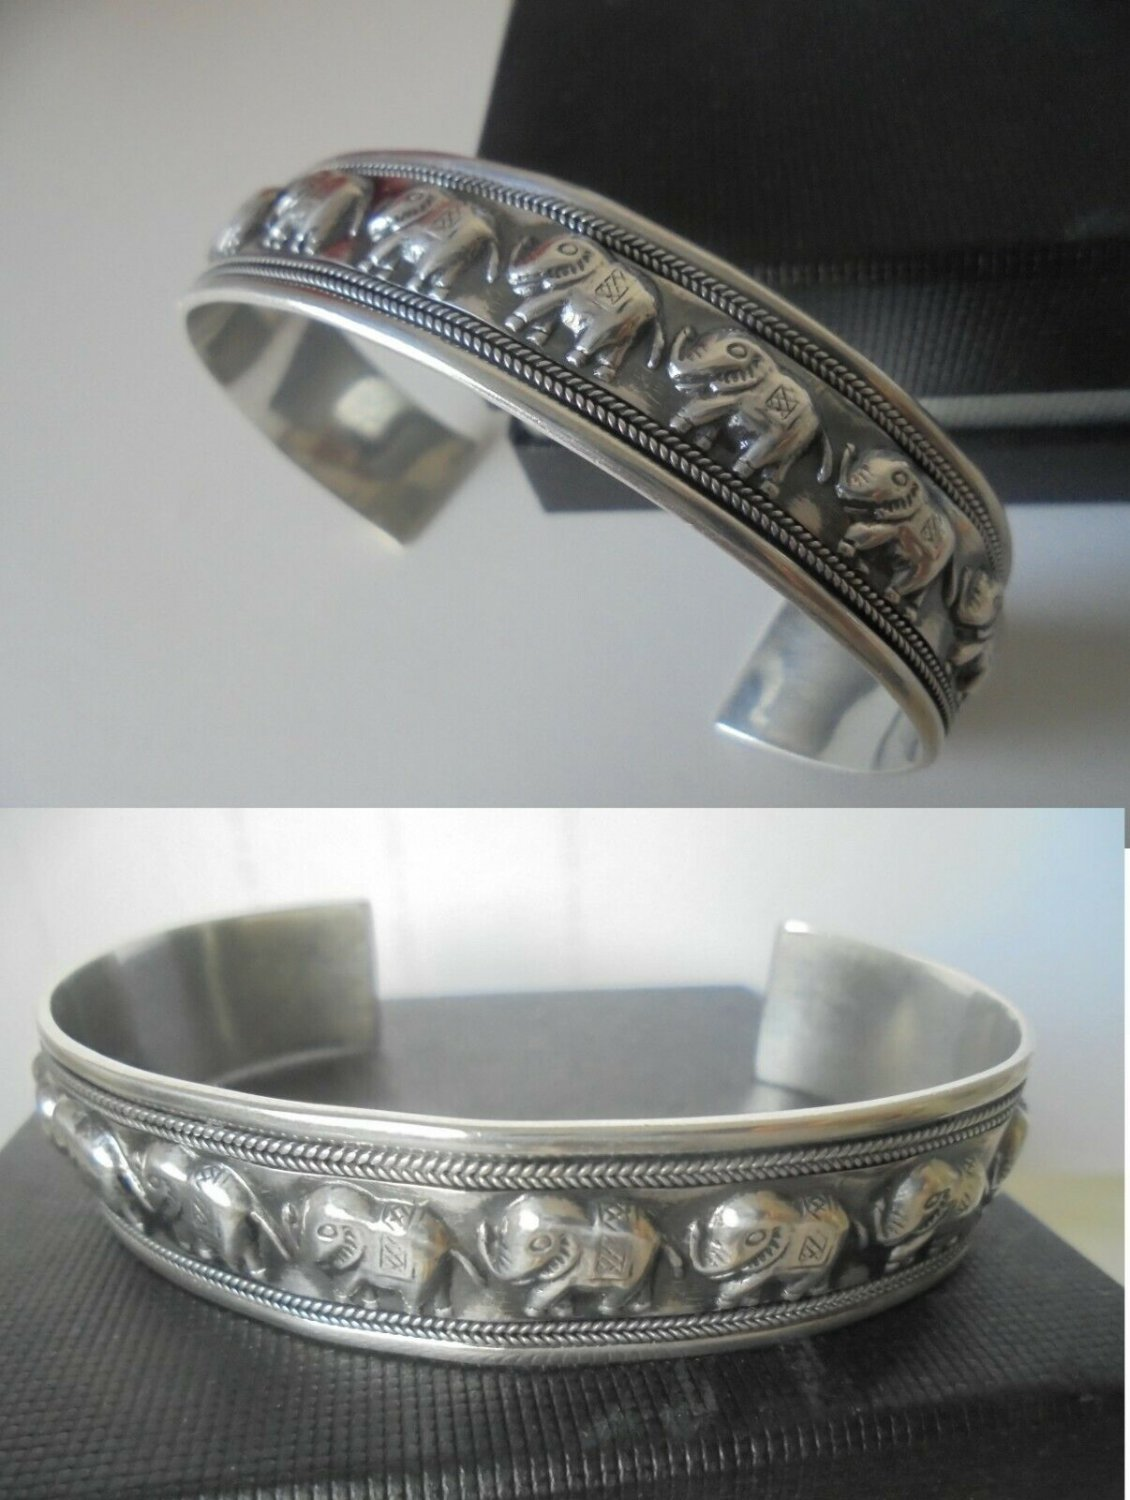 SILVER sterling 925 BRACELET with ELEPHANTS Original in gift box